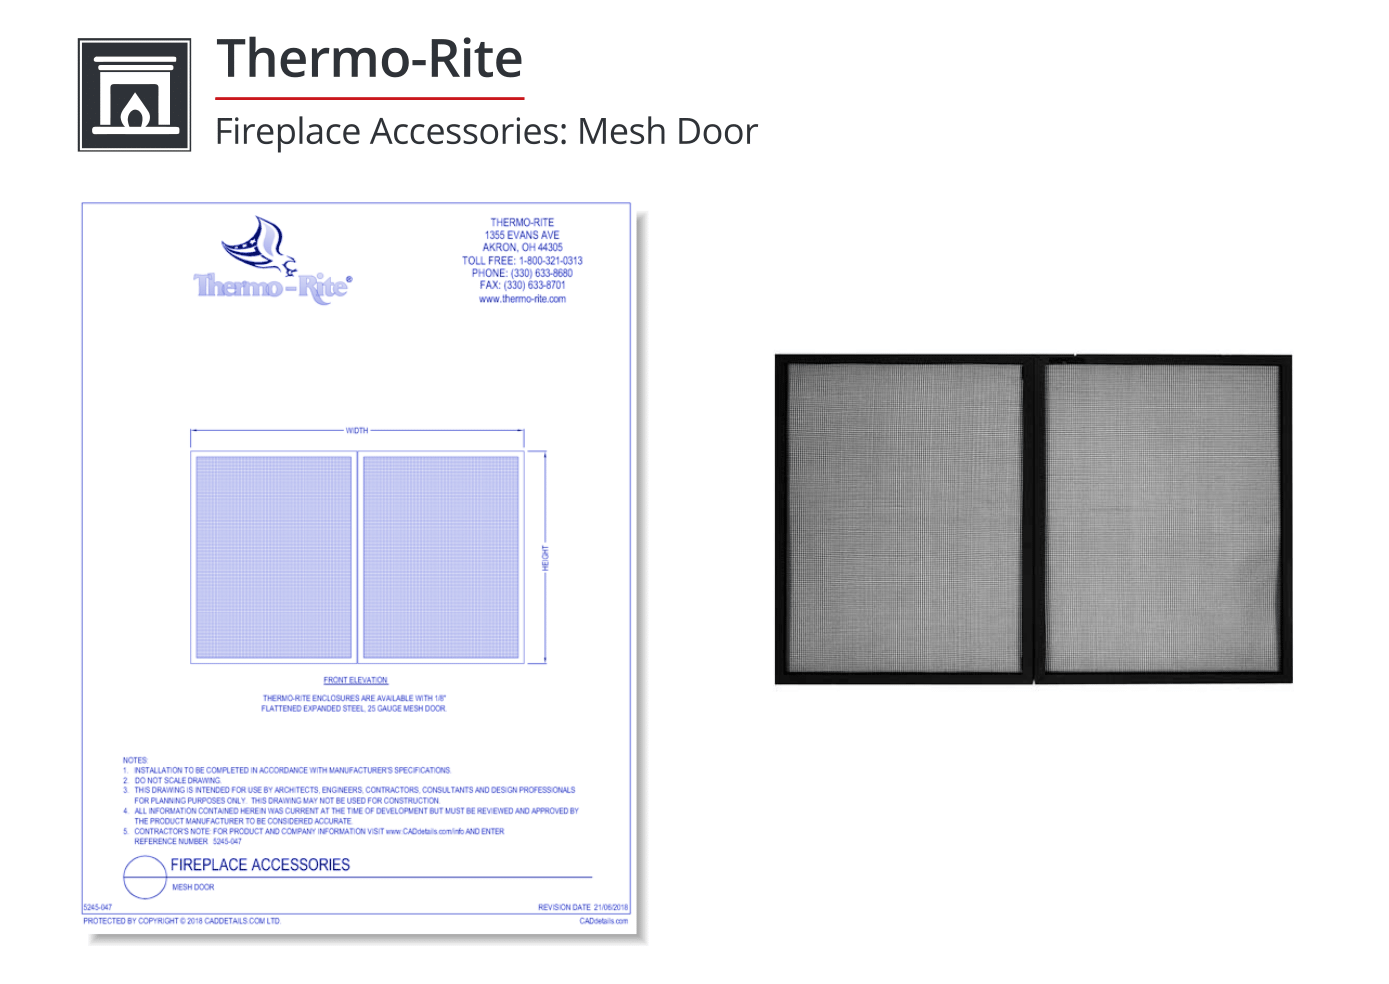 Thermo-Rite-Mesh-Door-Fireplace-Accessories-CADdrawing.png